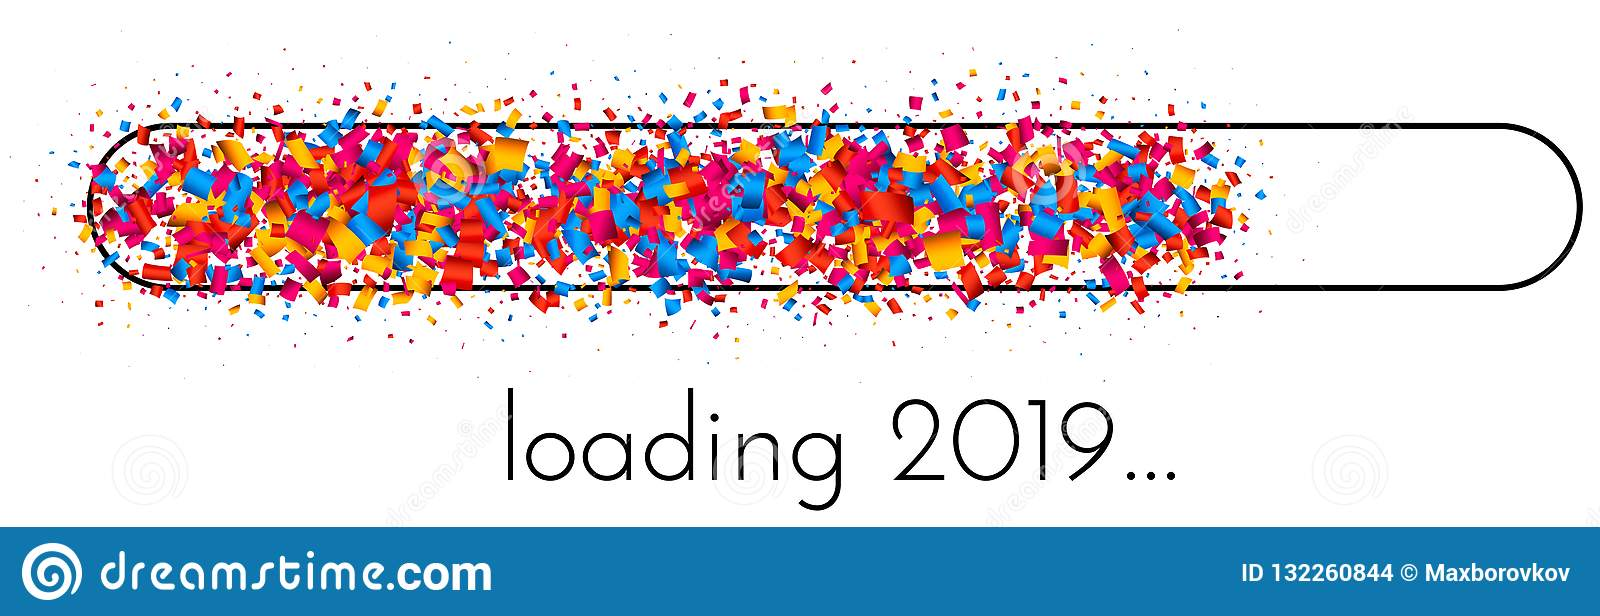 Loading 2019 New Year banner with colorful progress indicator.